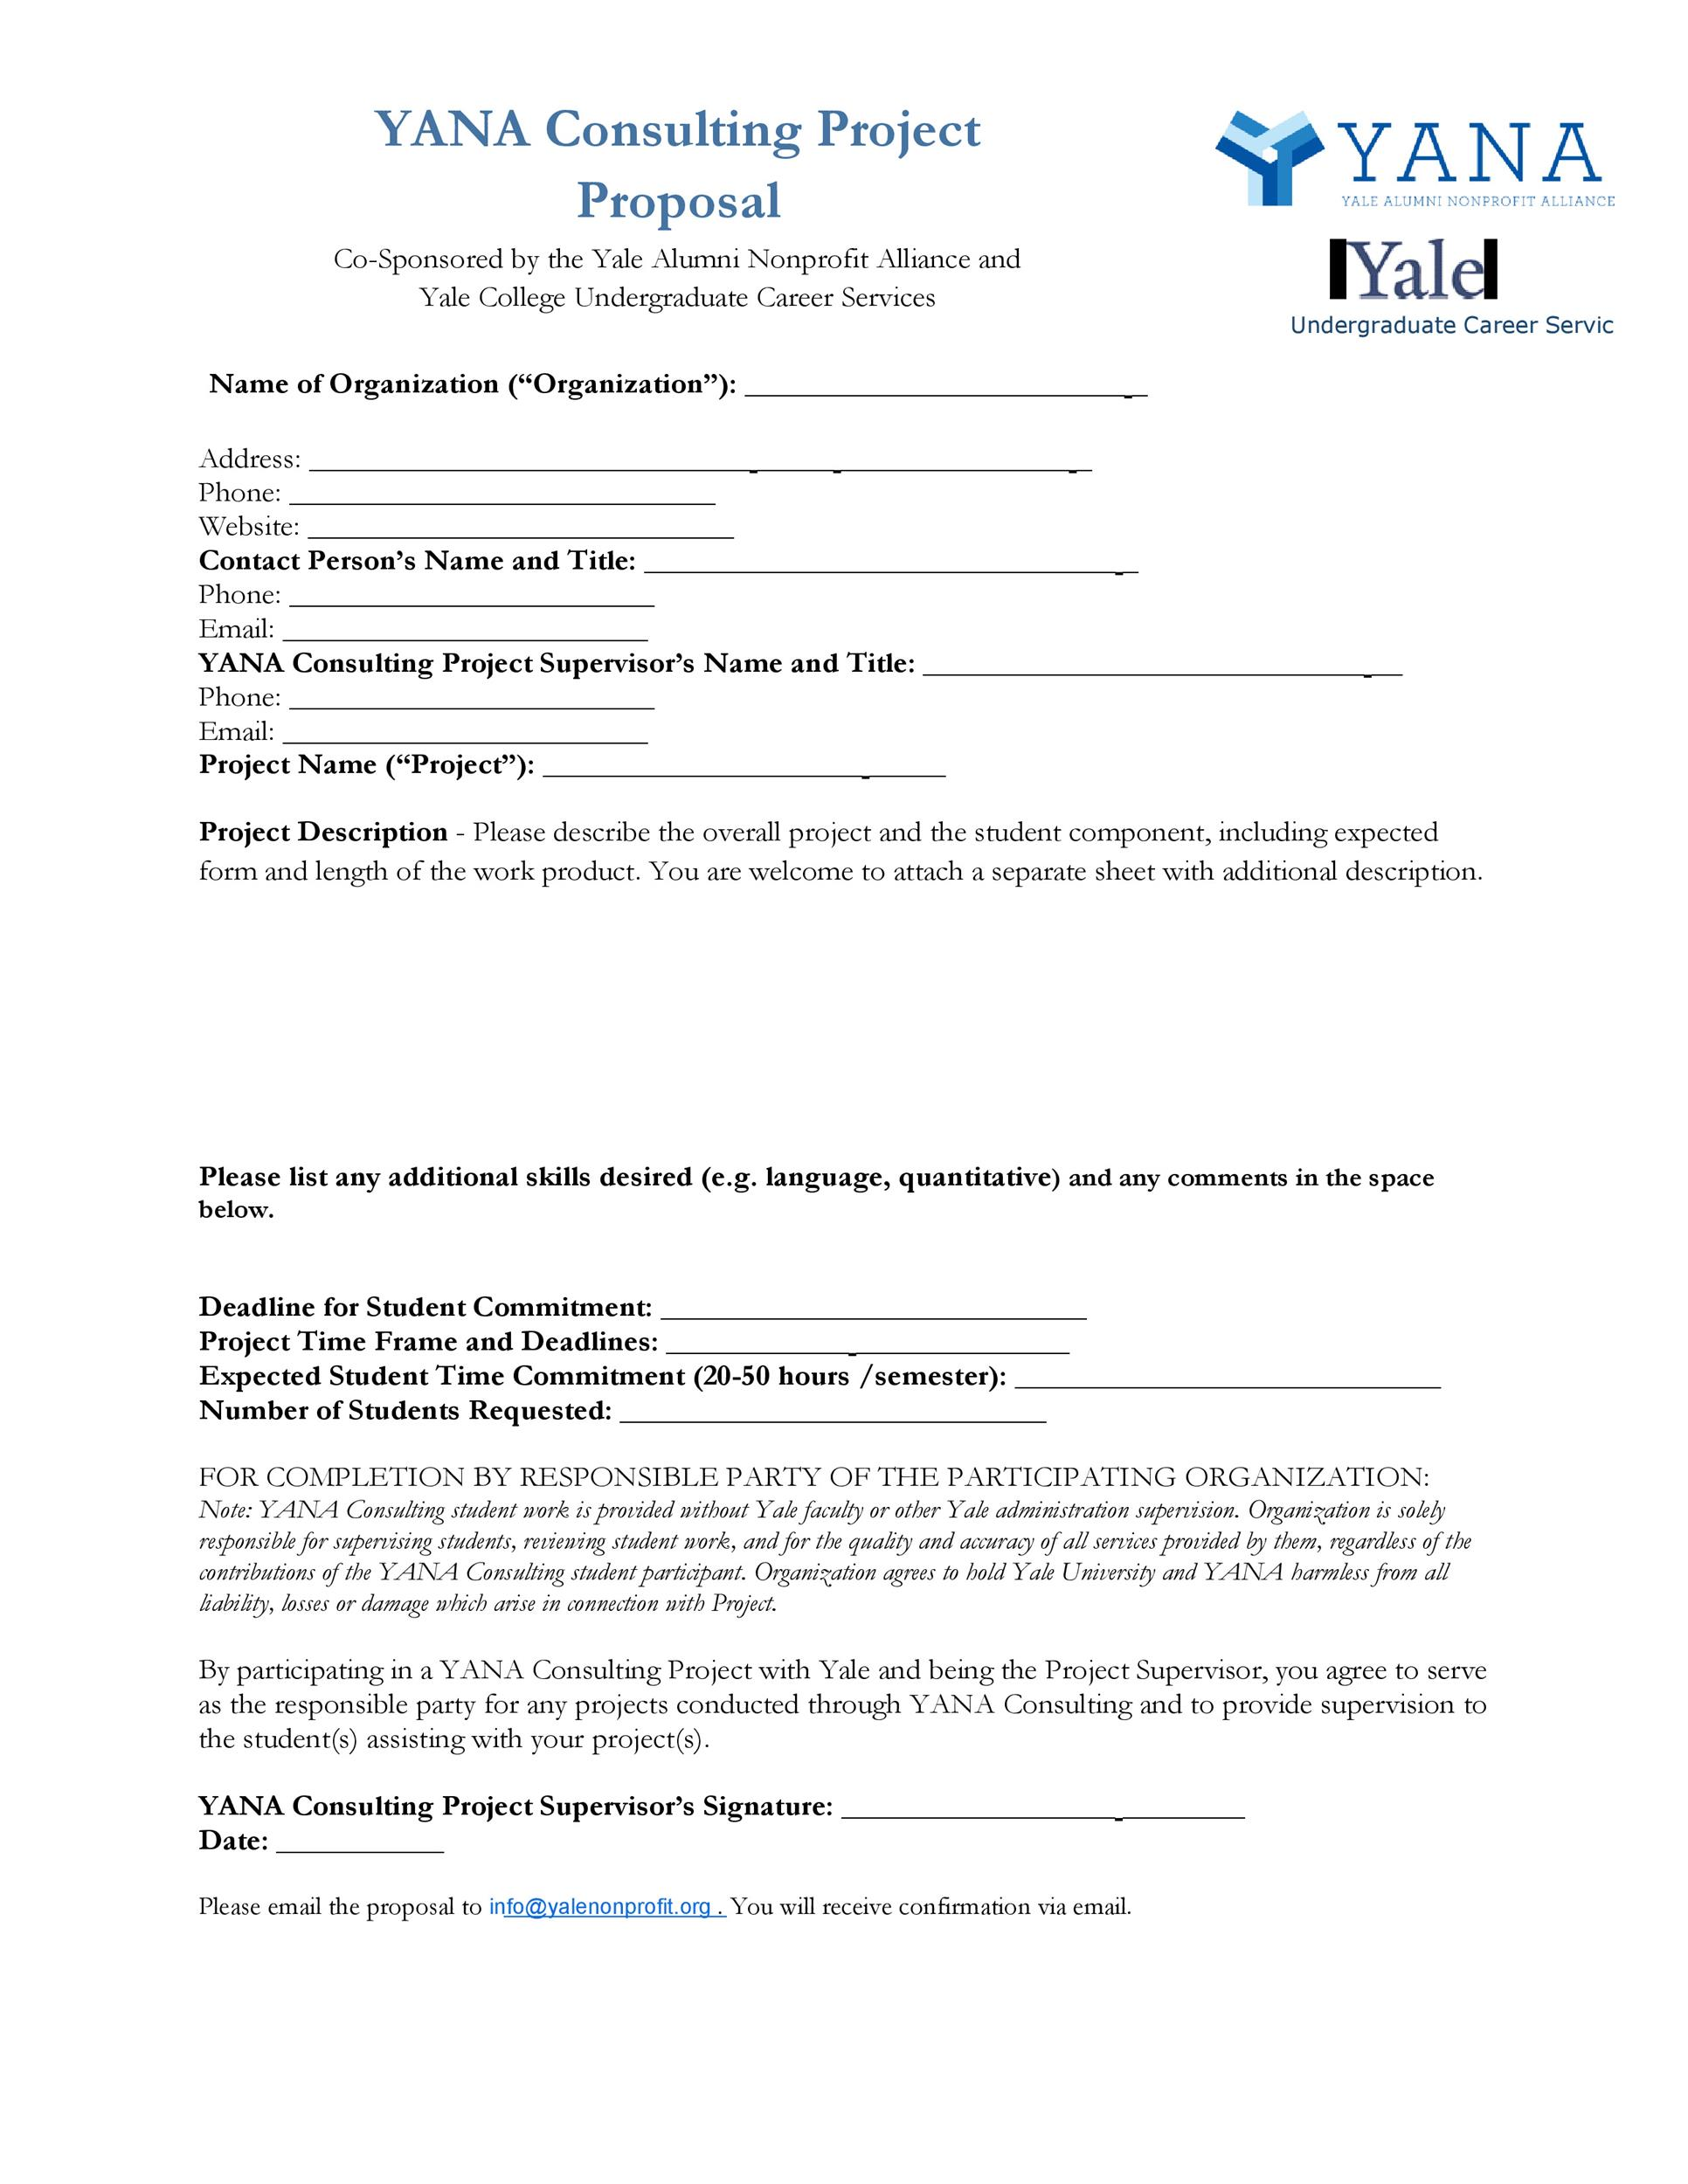 Free consulting proposal template 05